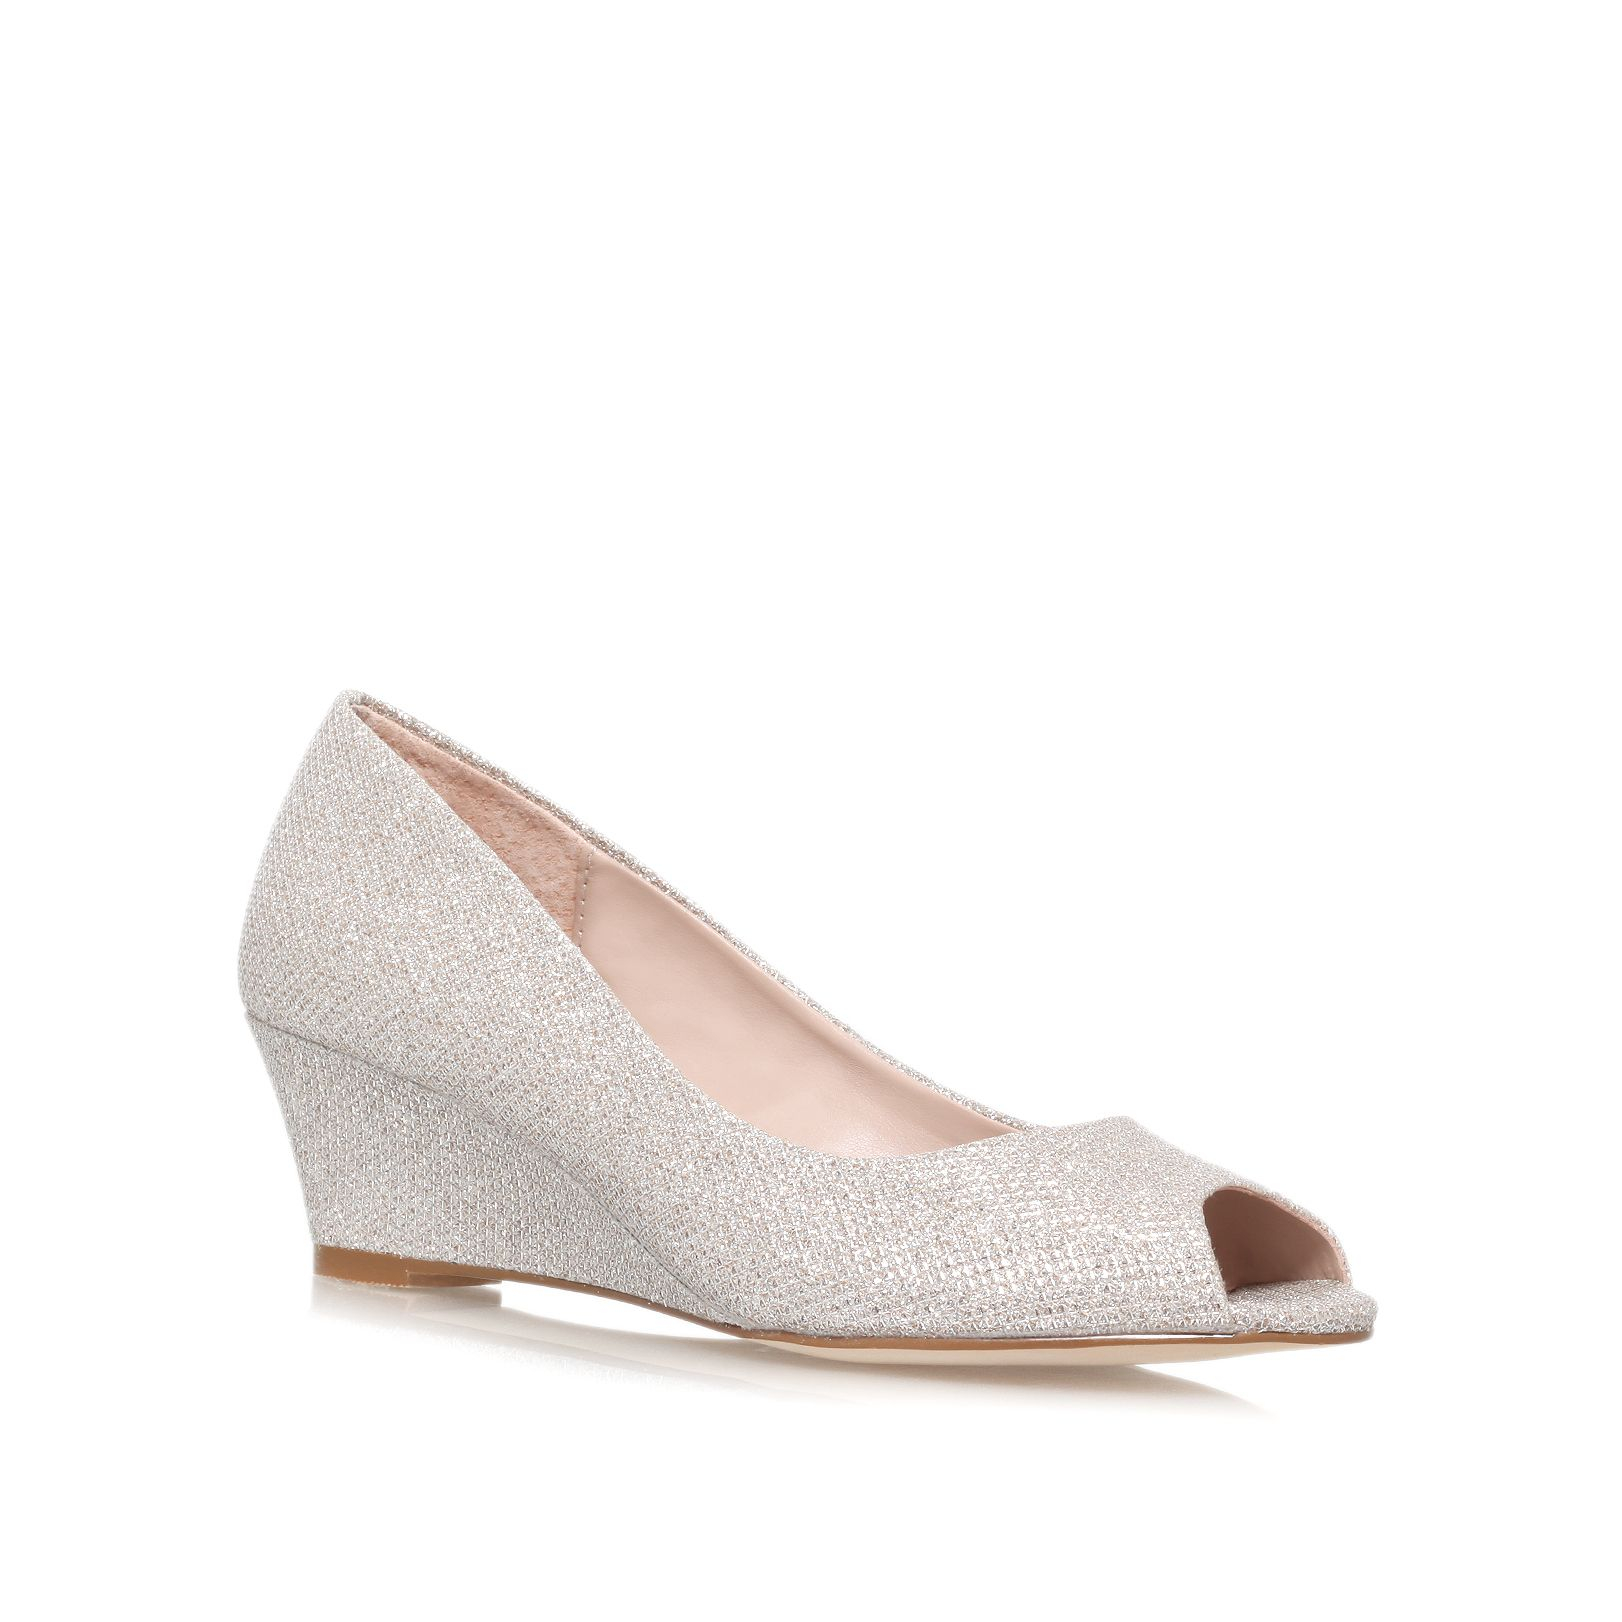 Silver Peep Toe Low Heel Shoe - Is Heel